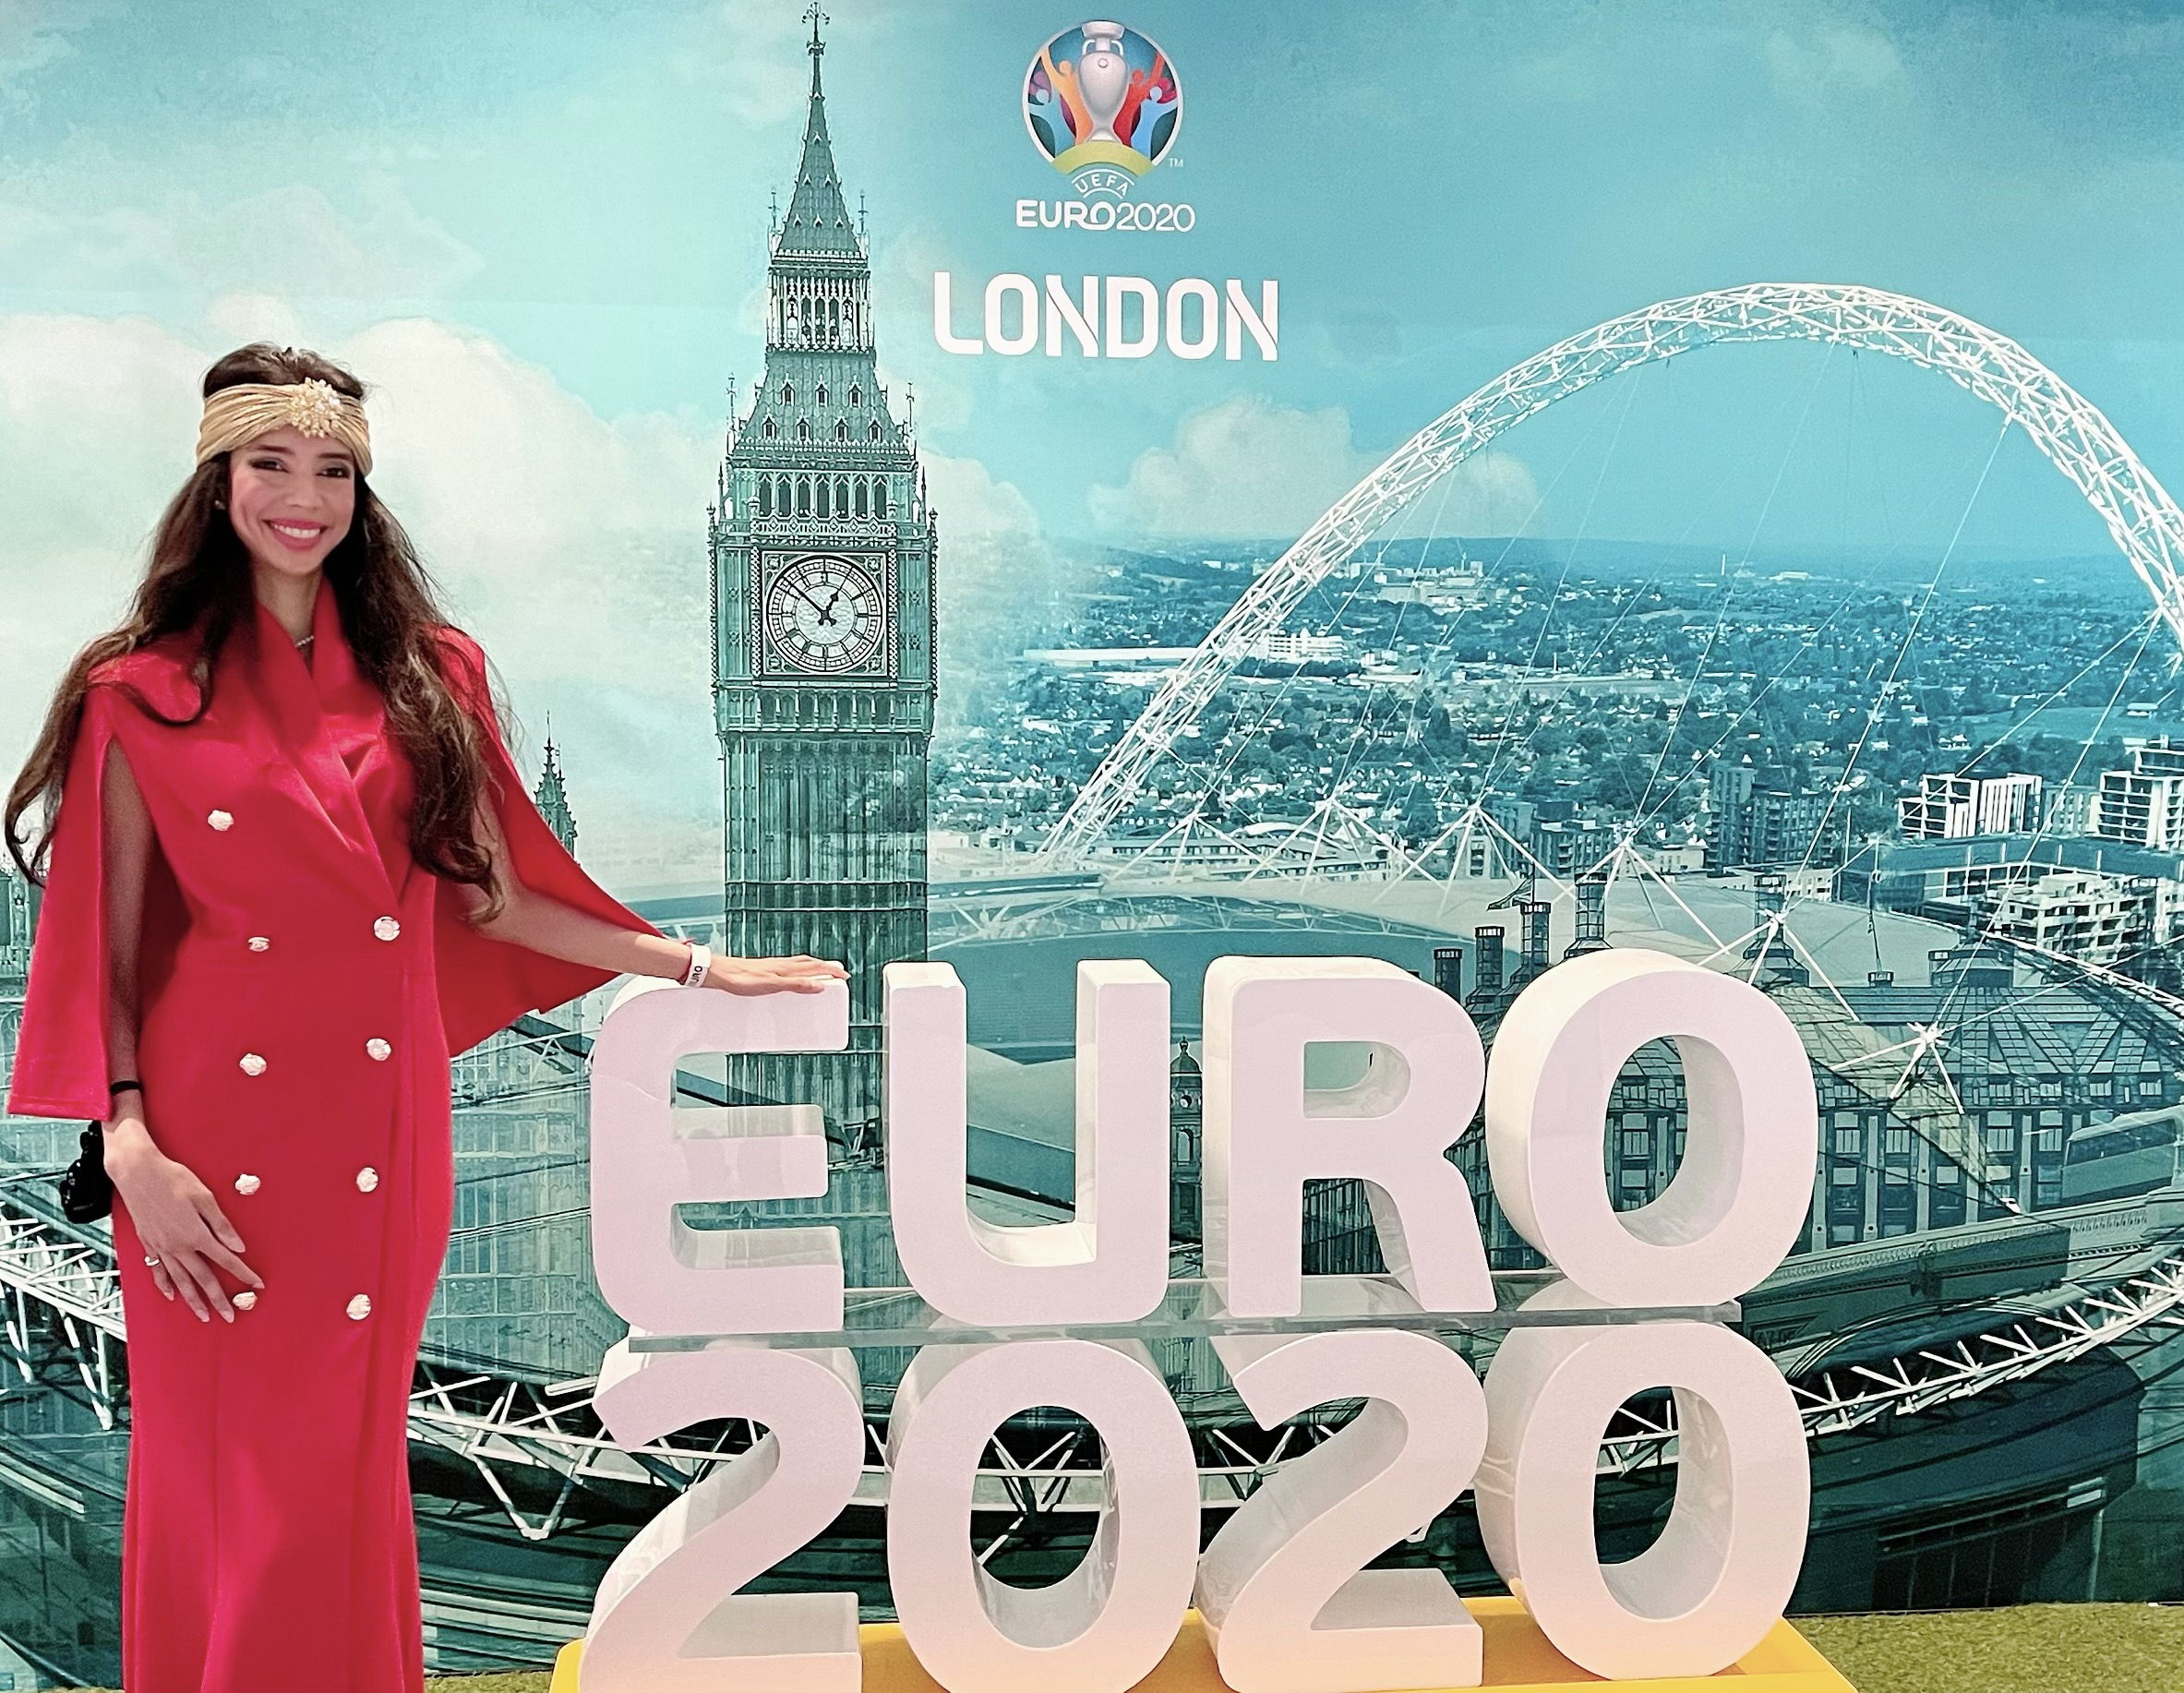 Princess Rani Vanouska T. Modely stands against discrimination after Euro cup final, and calls upon all the football federations to secure football's status as World Heritage.